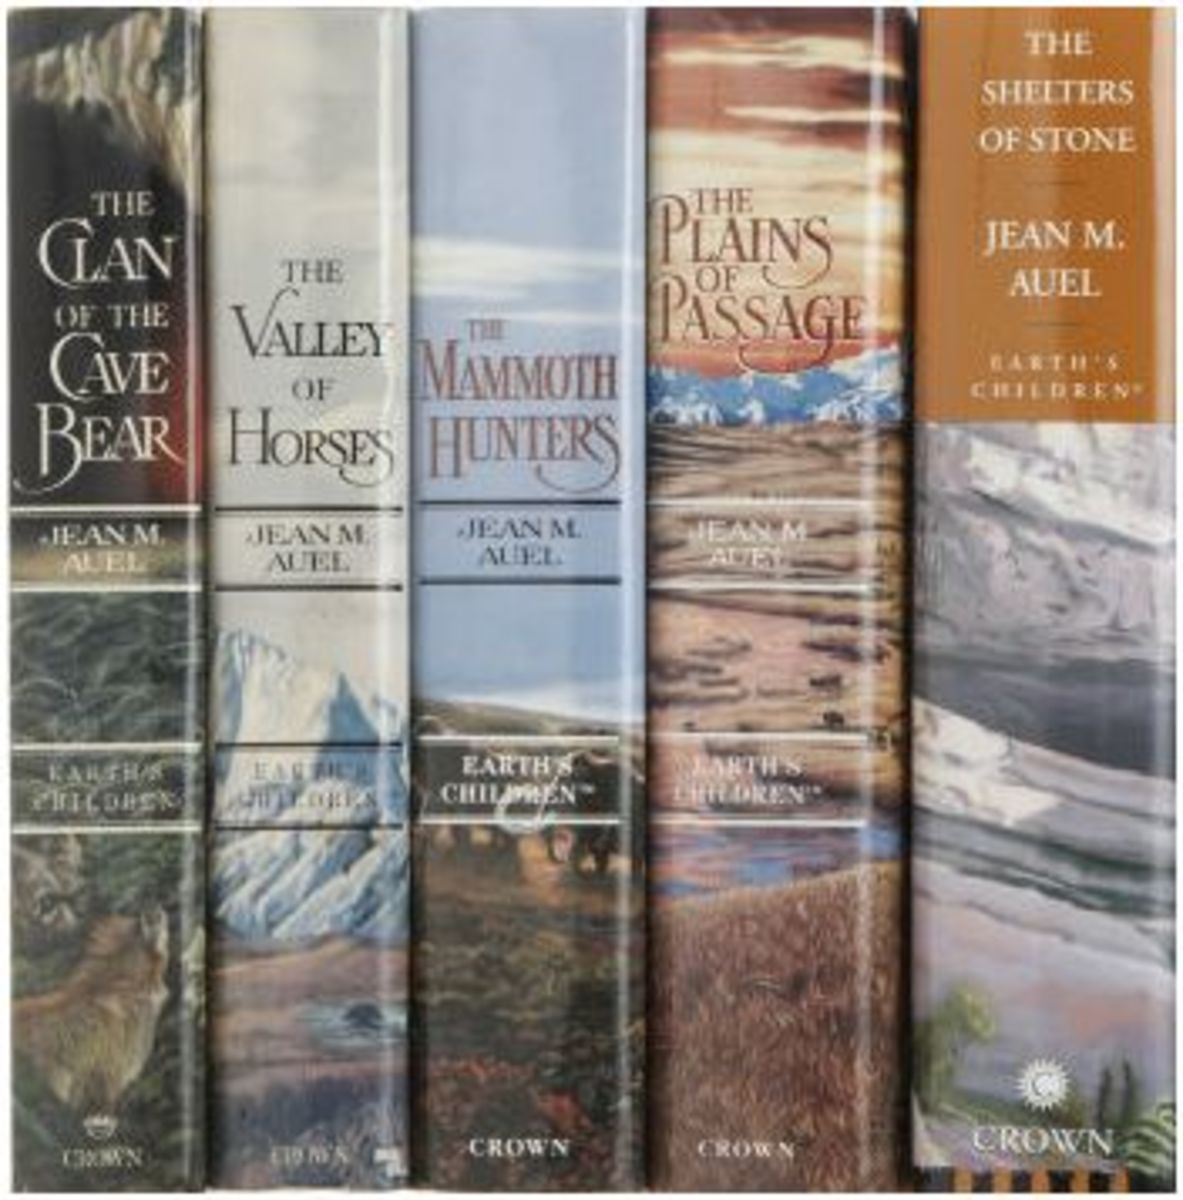 Earth S Children Series By Jean Auel Hubpages